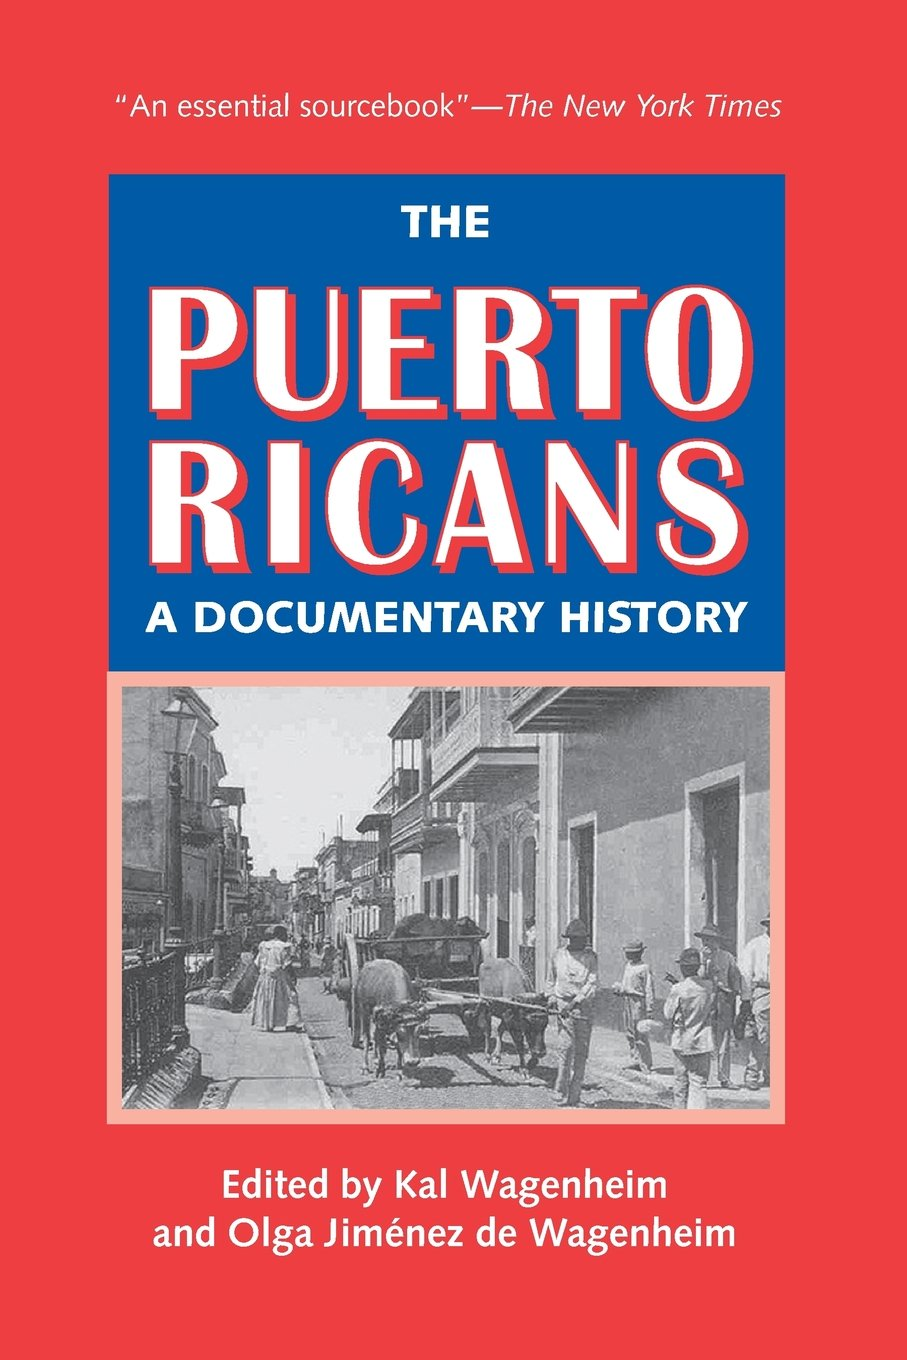 Scan of cover of Dr. Olga Wagenheim's book The Pureto Ricans: A Documentary History